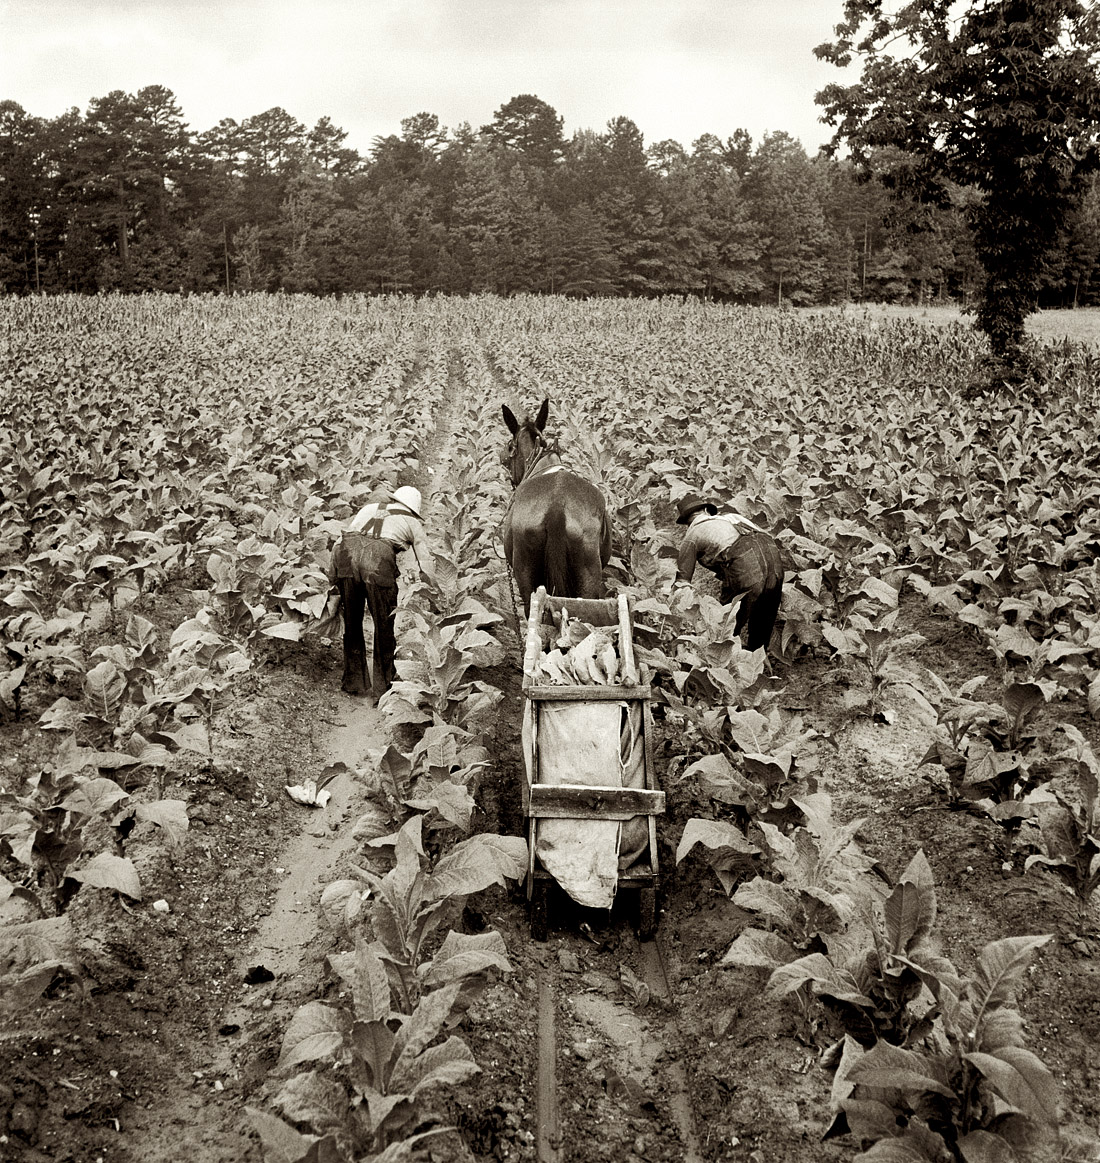 How to Buy Home Grown Tobacco How to Buy Home Grown Tobacco new photo